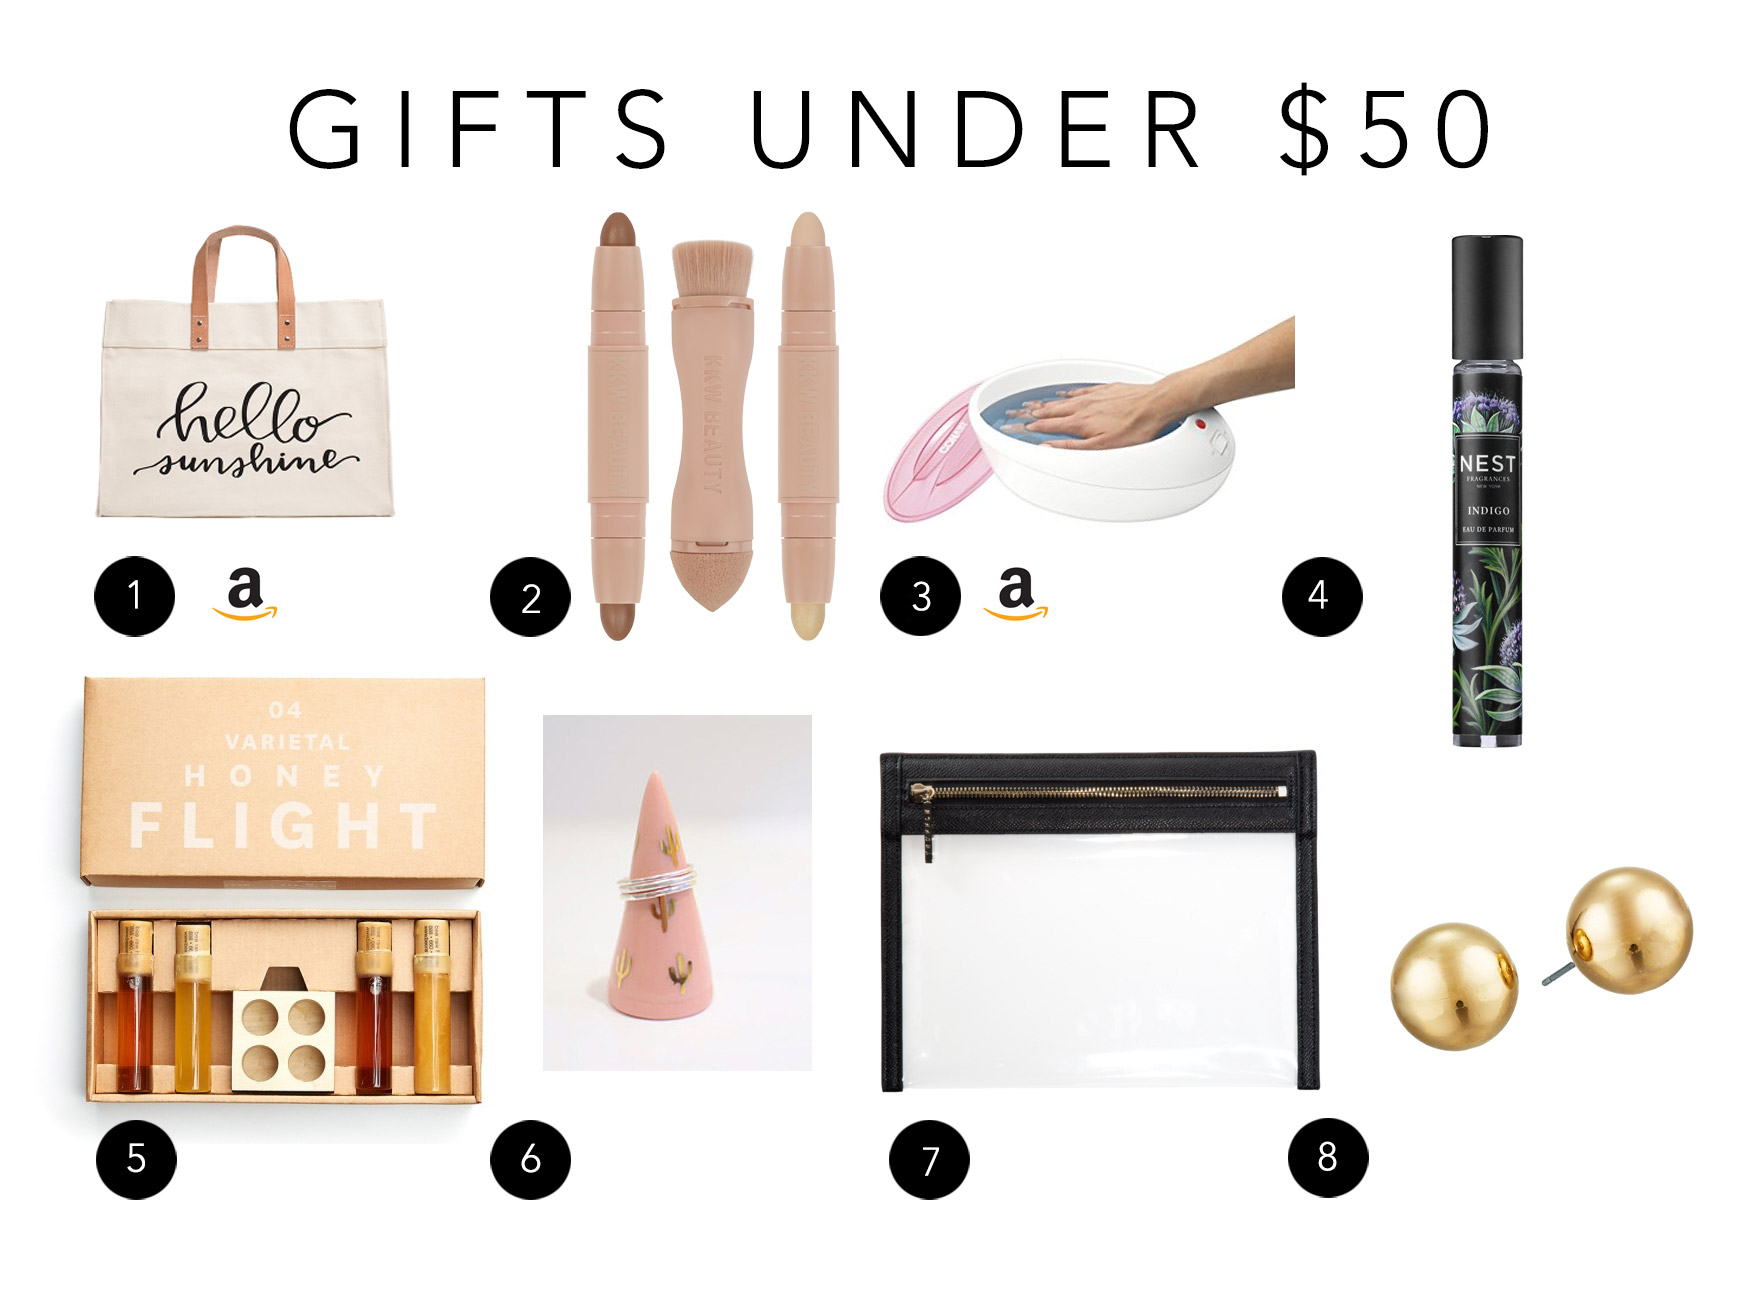 gift guide Christmas gifts under $50 list